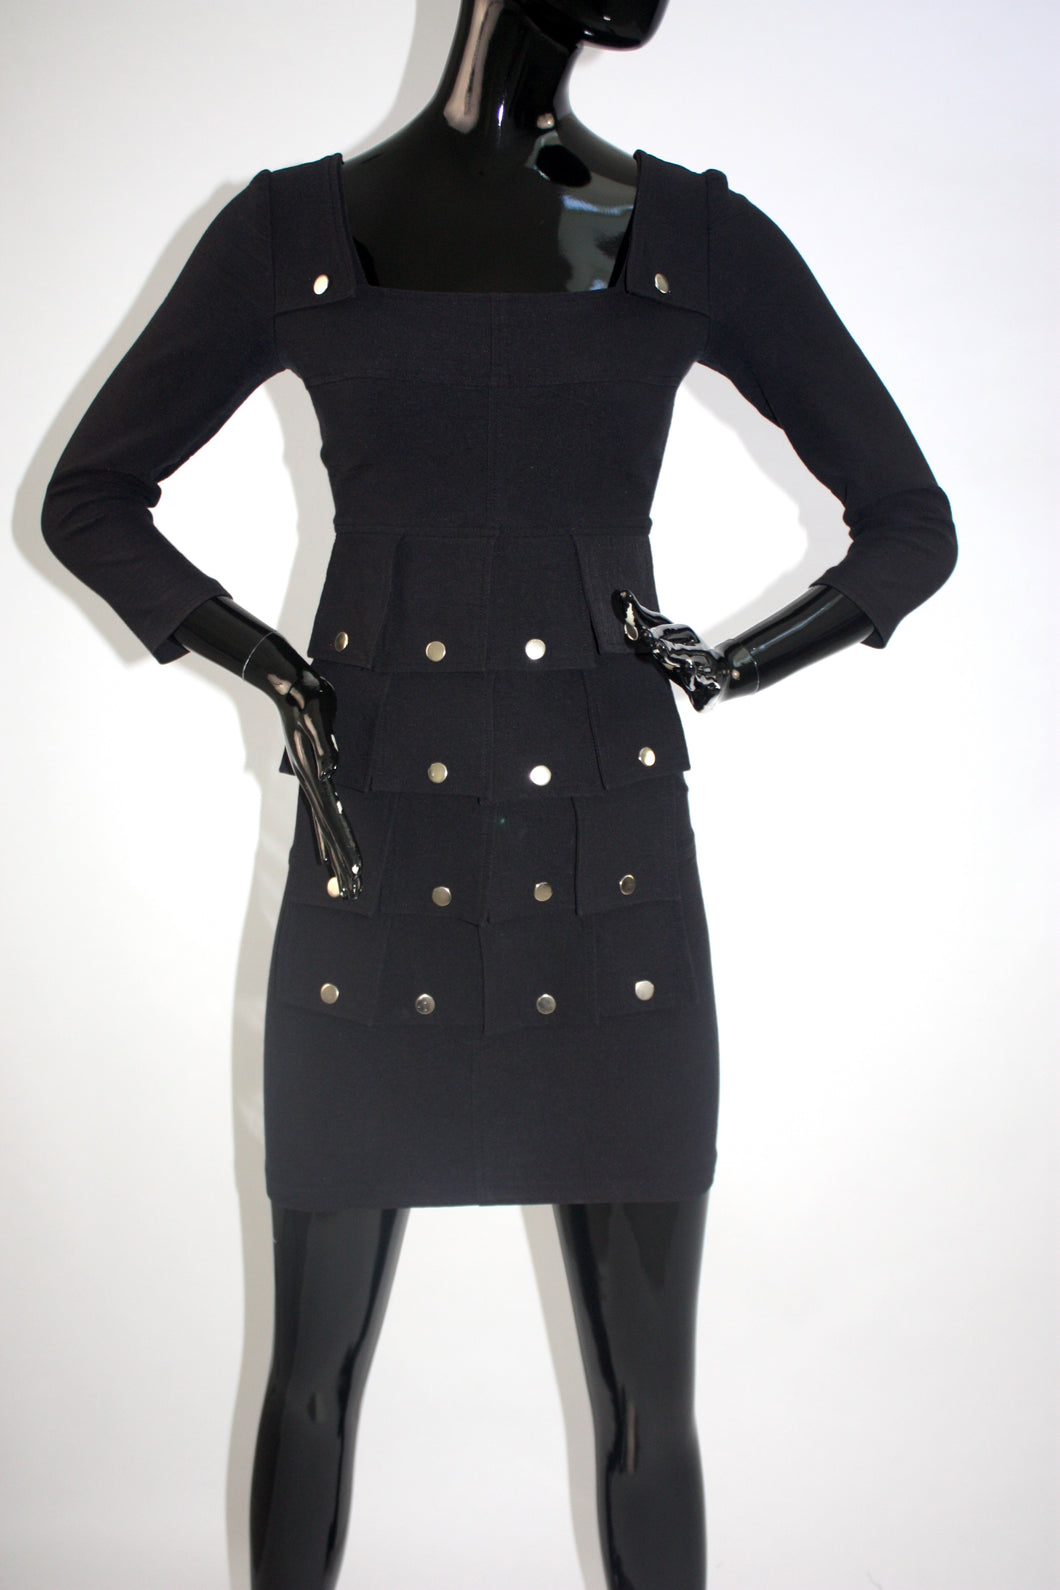 Vintage 1980s Made in France paneled body con dress